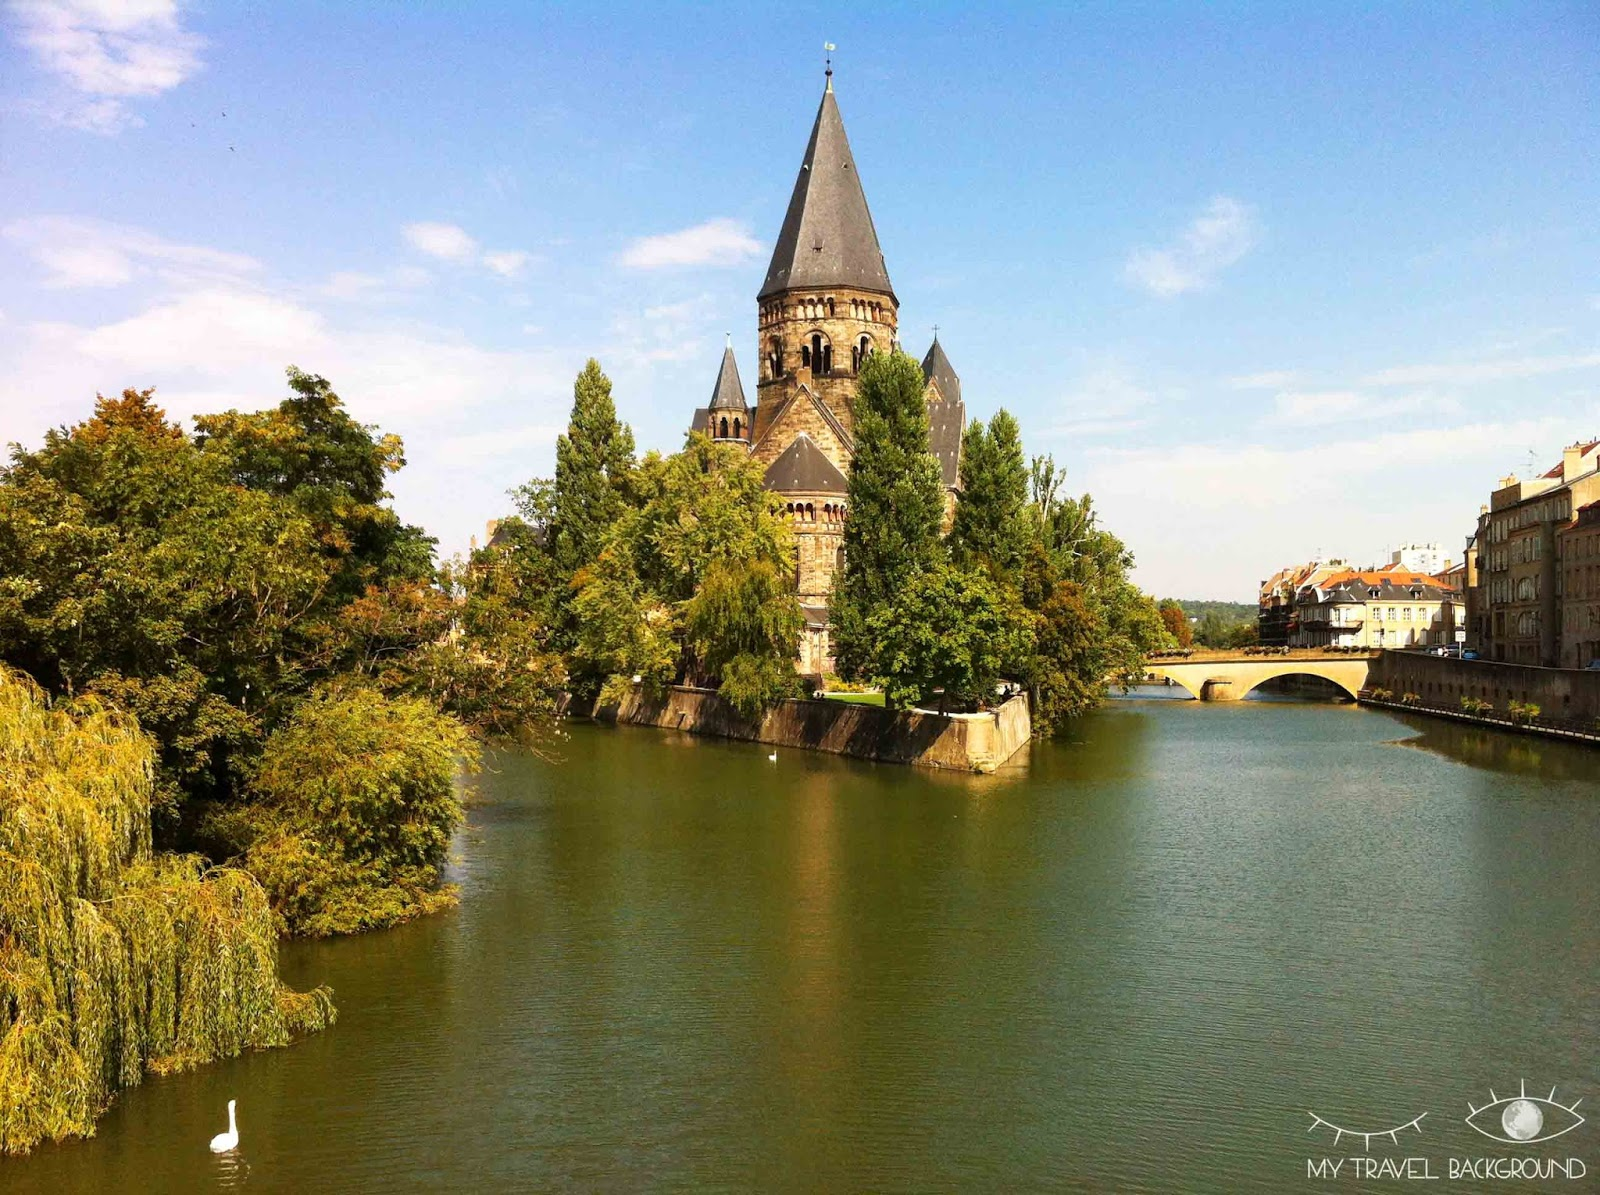 My Travel Background : 12 lieux à visiter à Metz - Le Temple Neuf